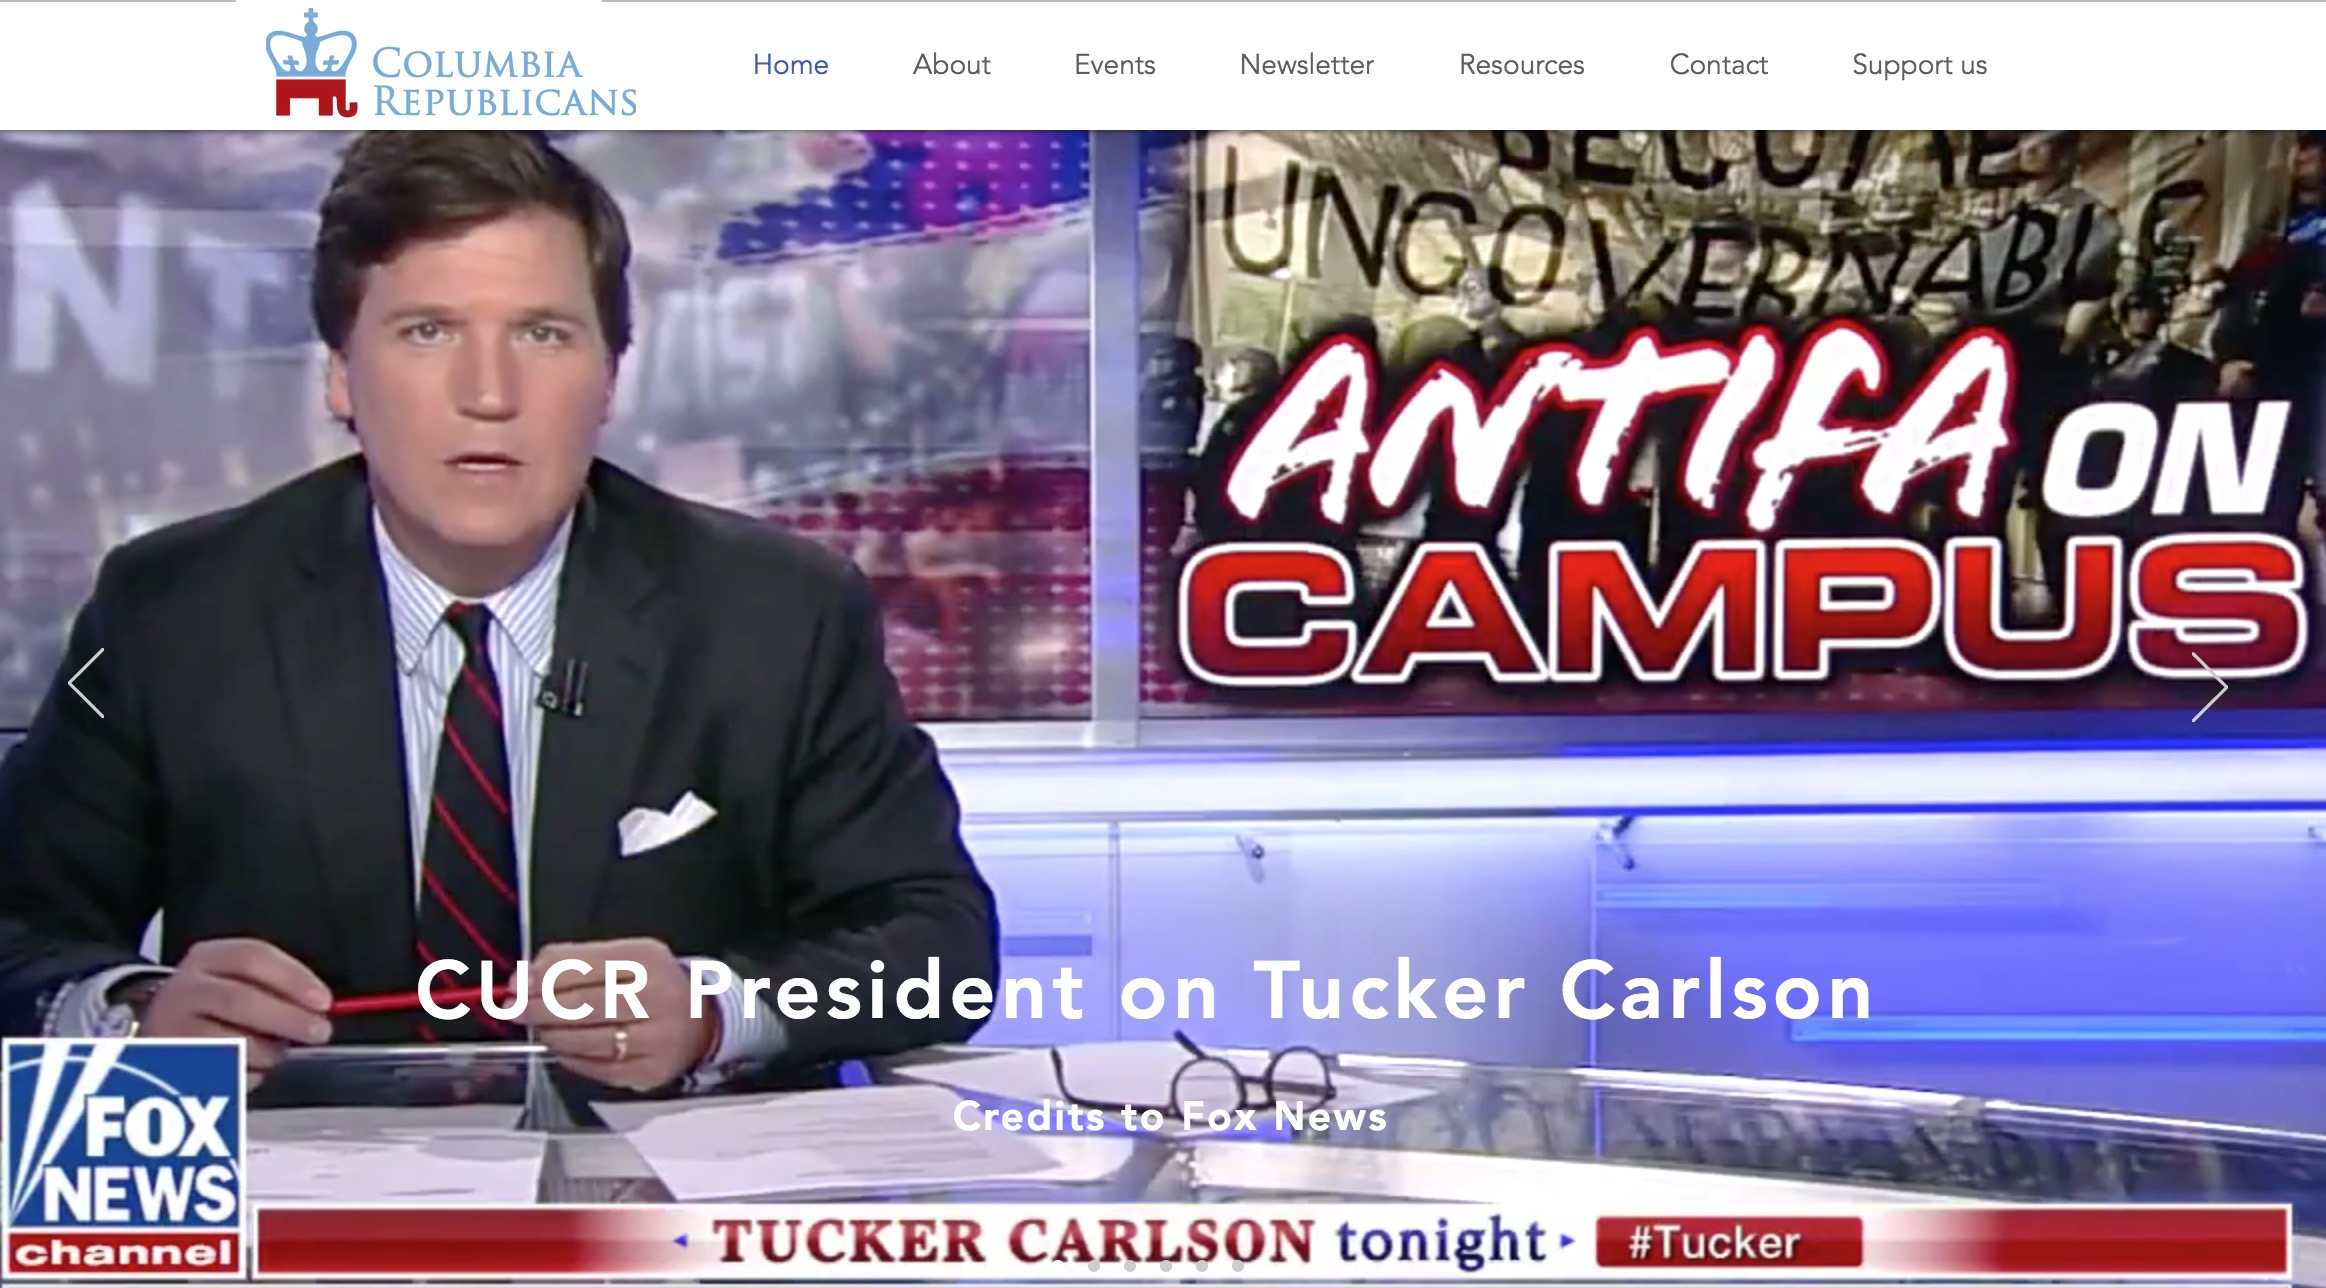 screenshot of Fox News commentator Tucker Carlson, taken from Columbia University College Republicans homepage